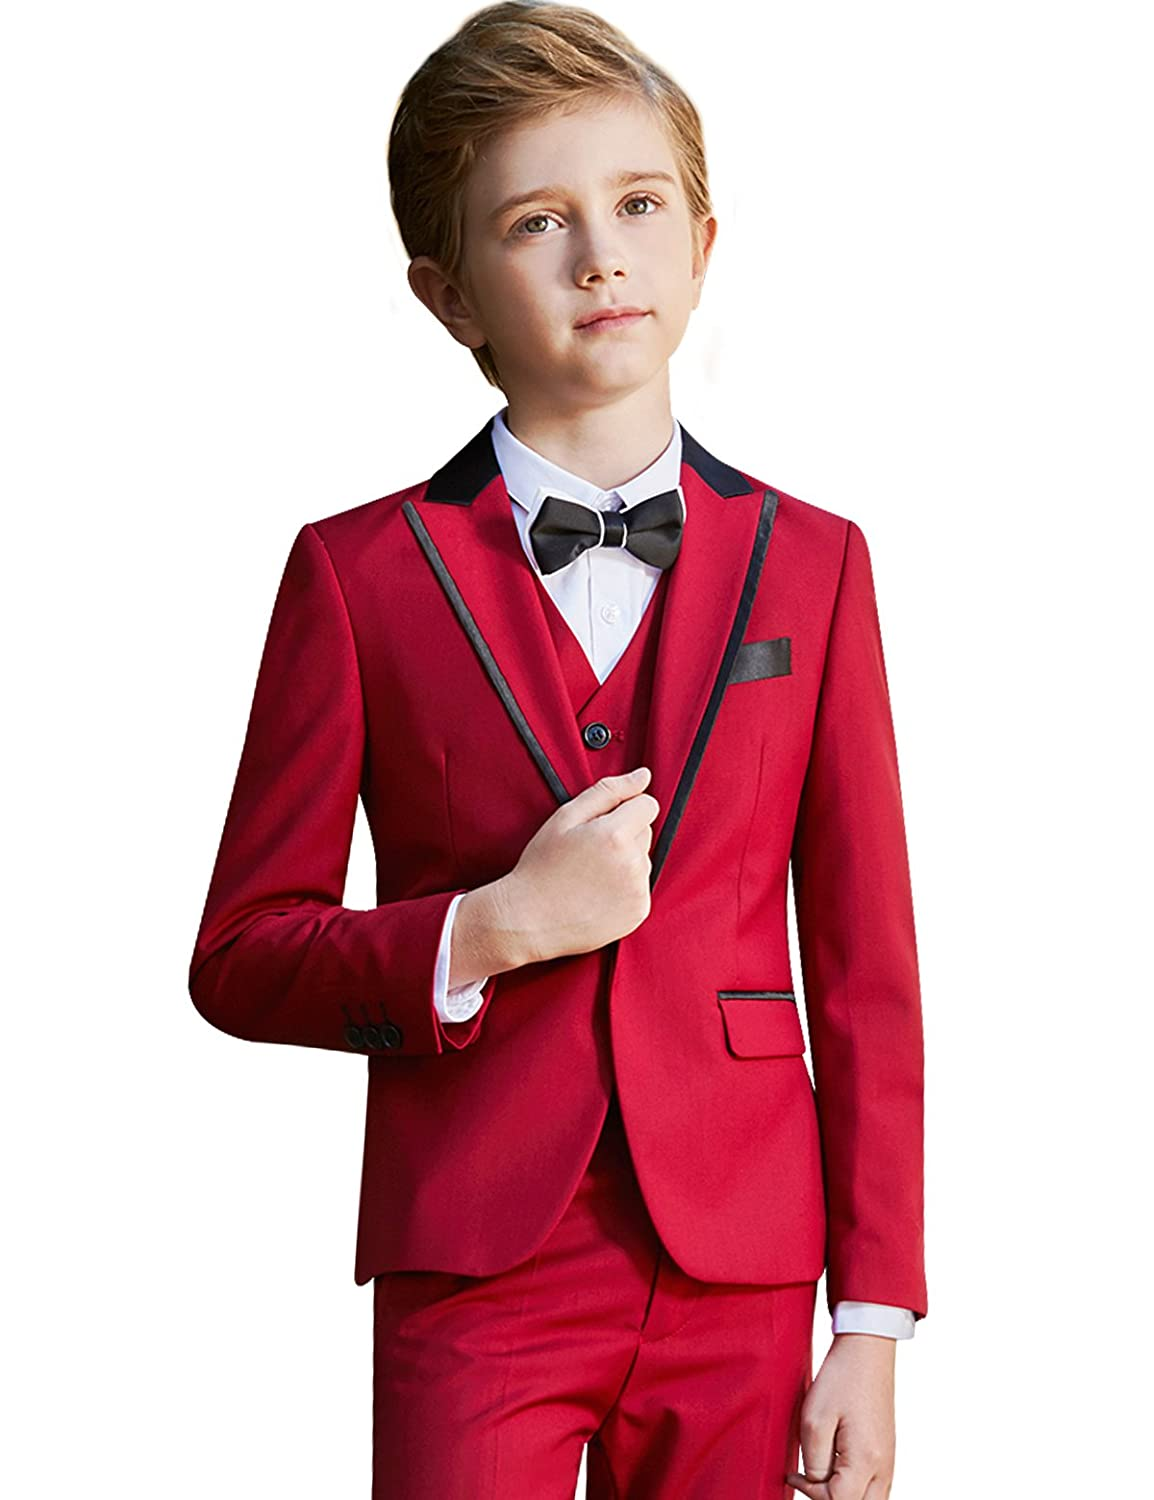 f58aed1b4 ELPA ELPA Boys Tuxedo Suits Kids Slim Fit Dress Wear 5 Pcs Formal Outfit